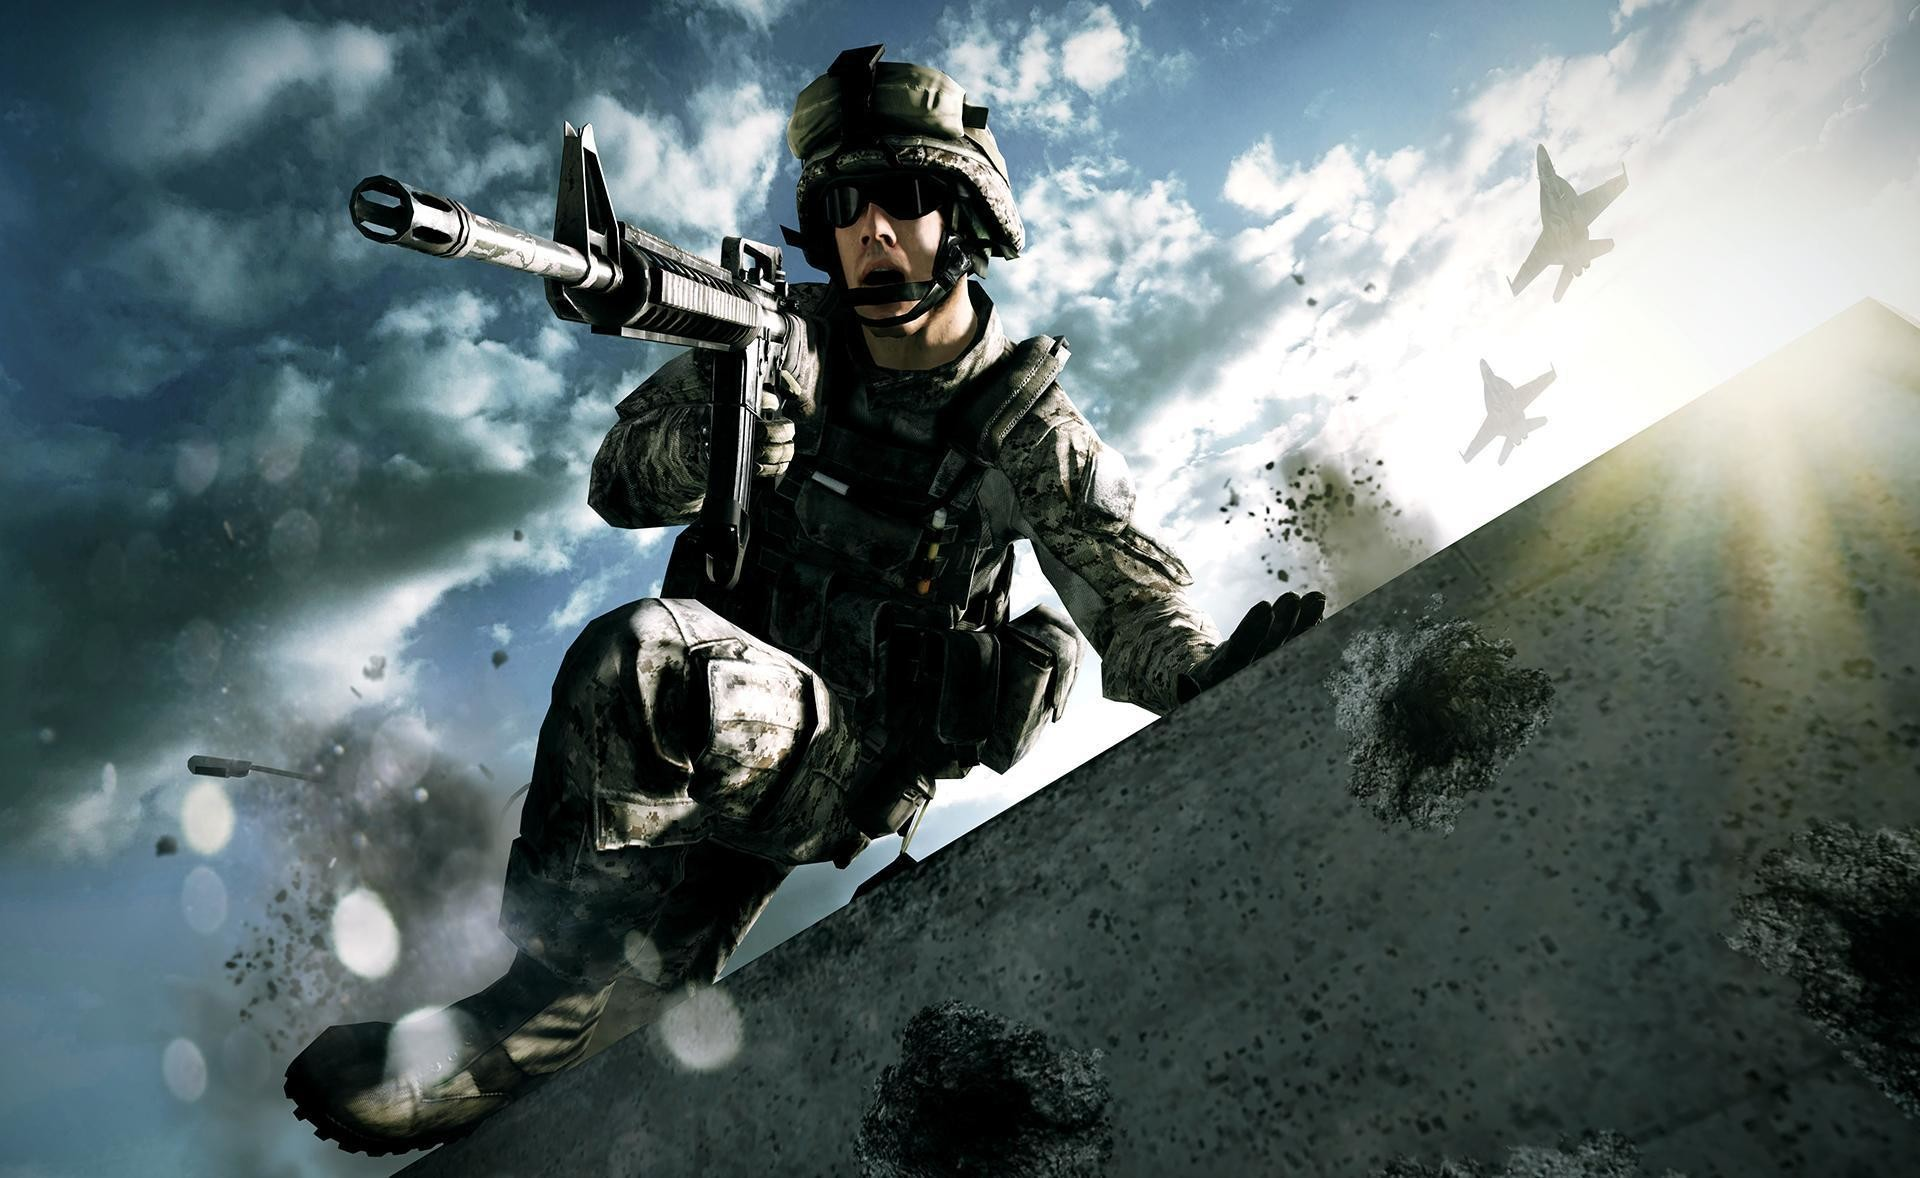 1920x1178 Cool Army Anction Android Wallpaper 7681 #2176 Wallpaper | High .